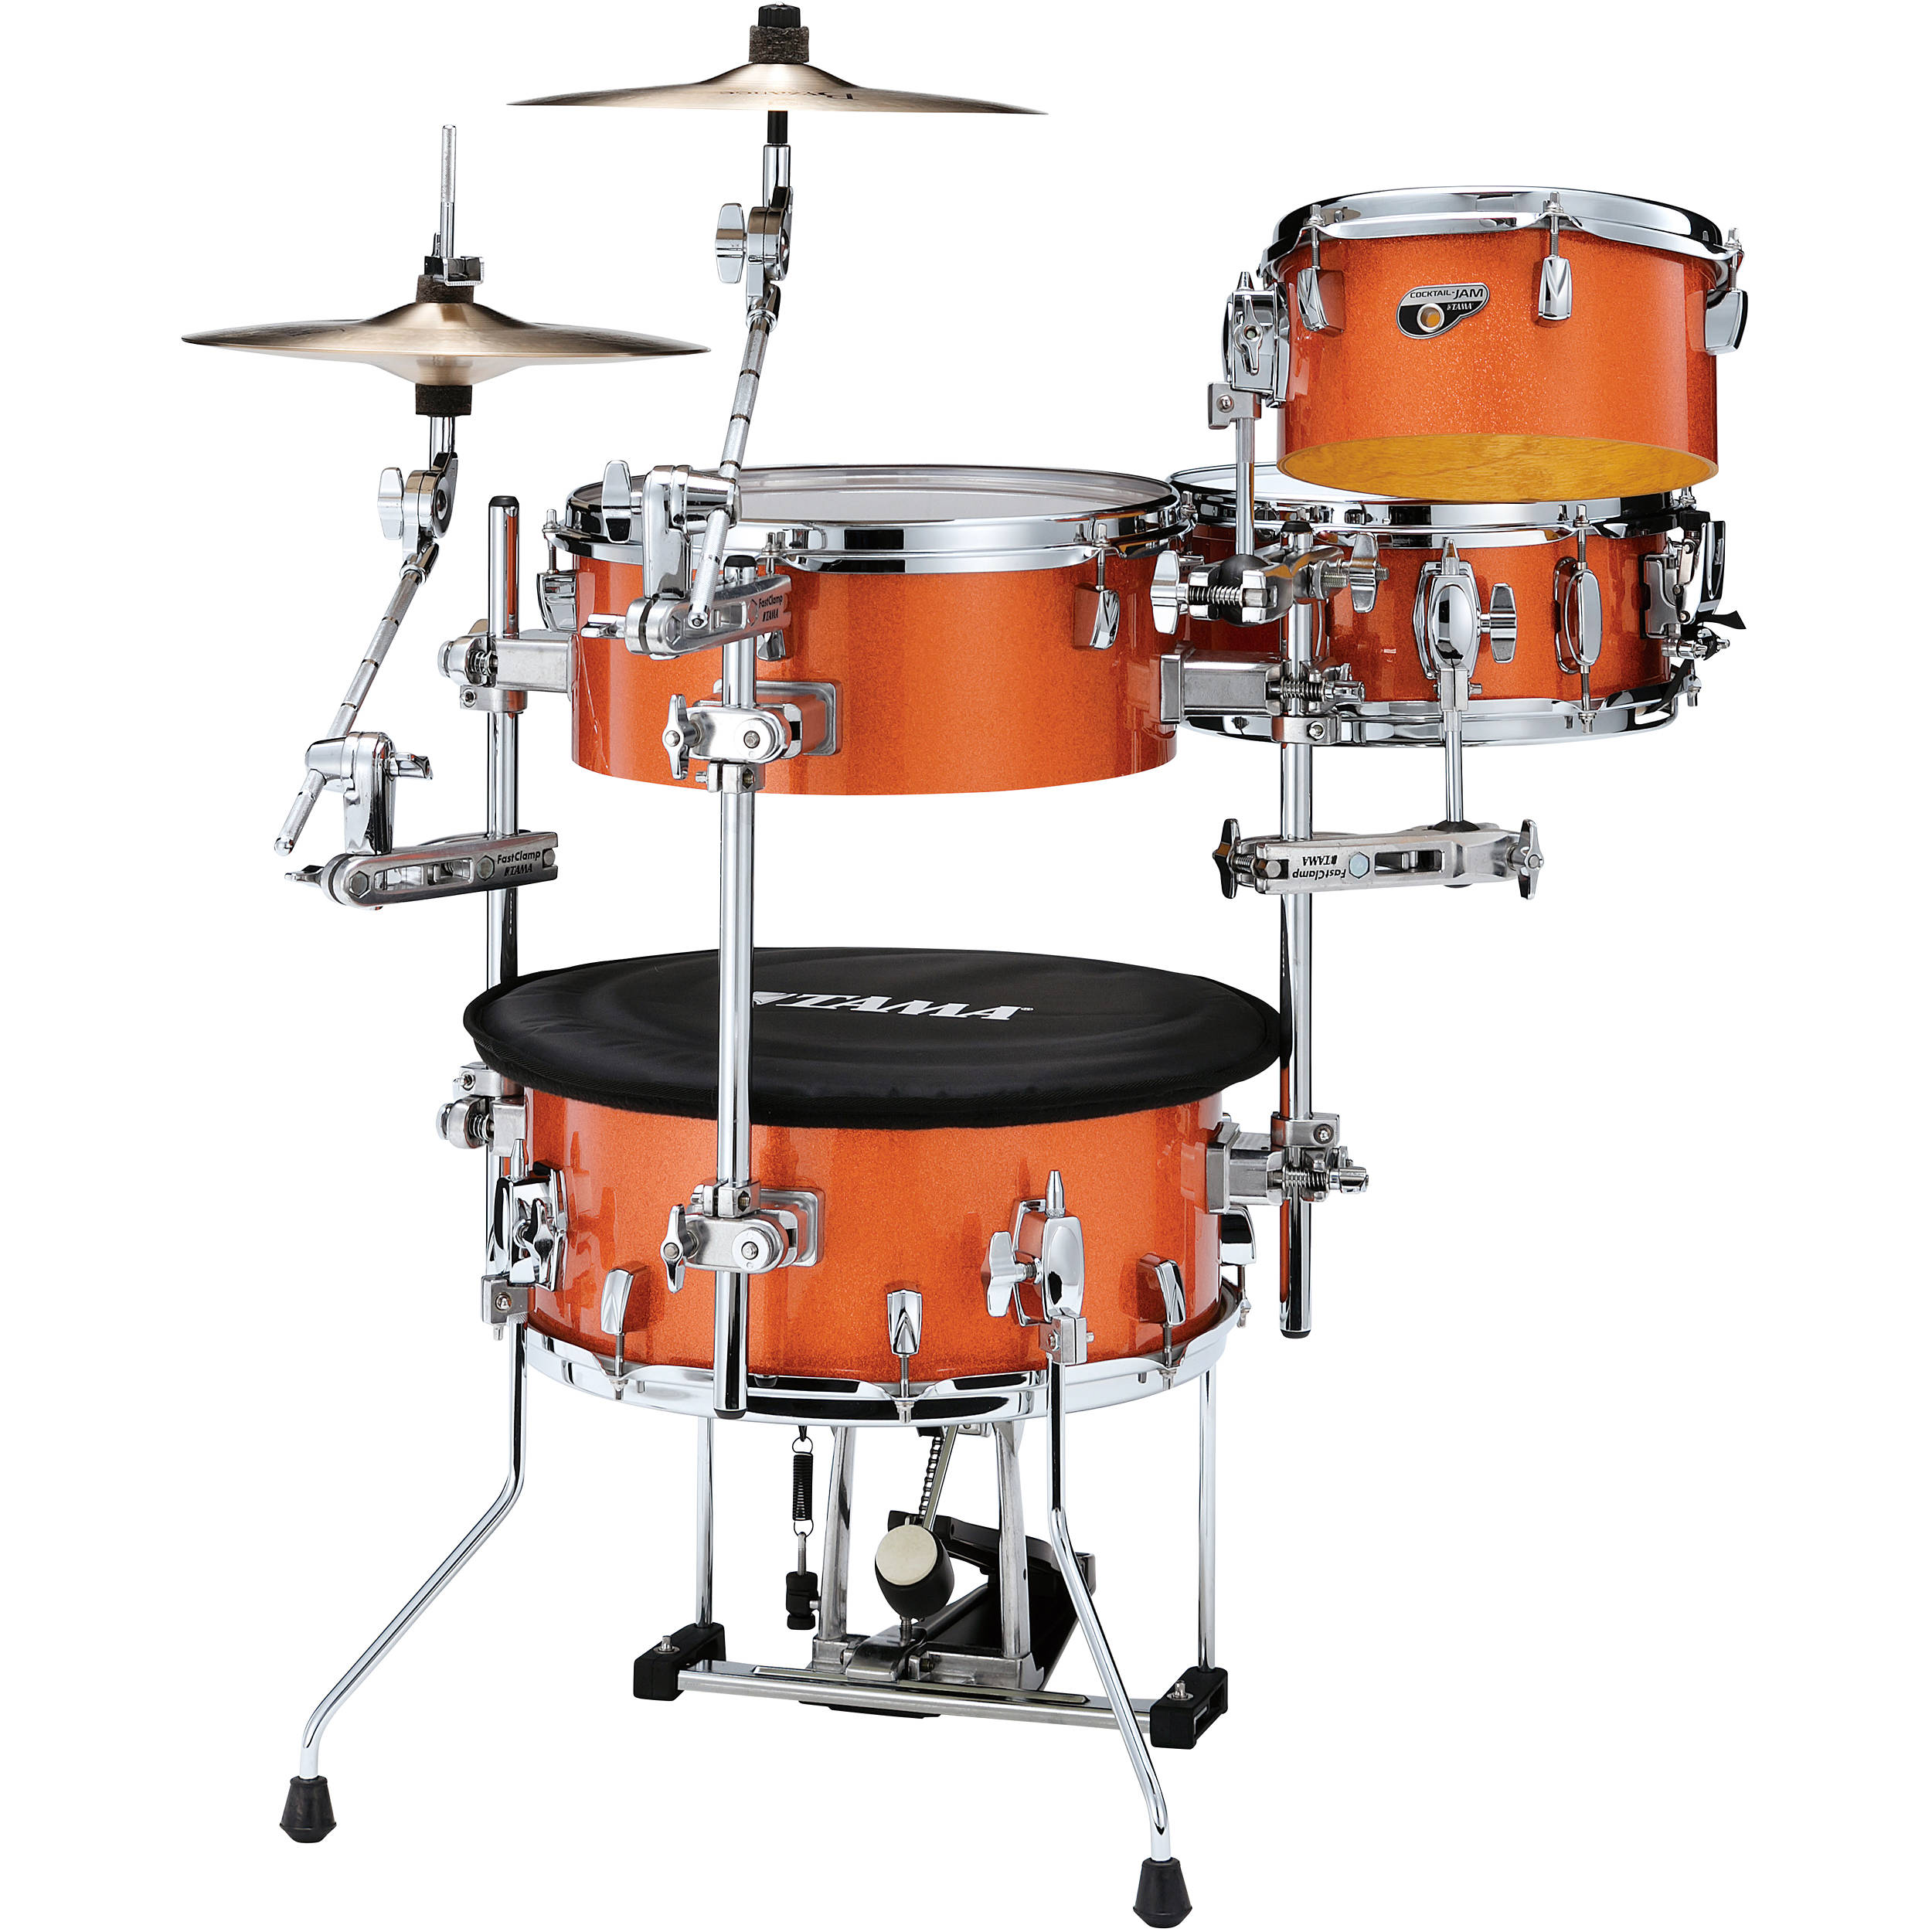 Portable drum kit